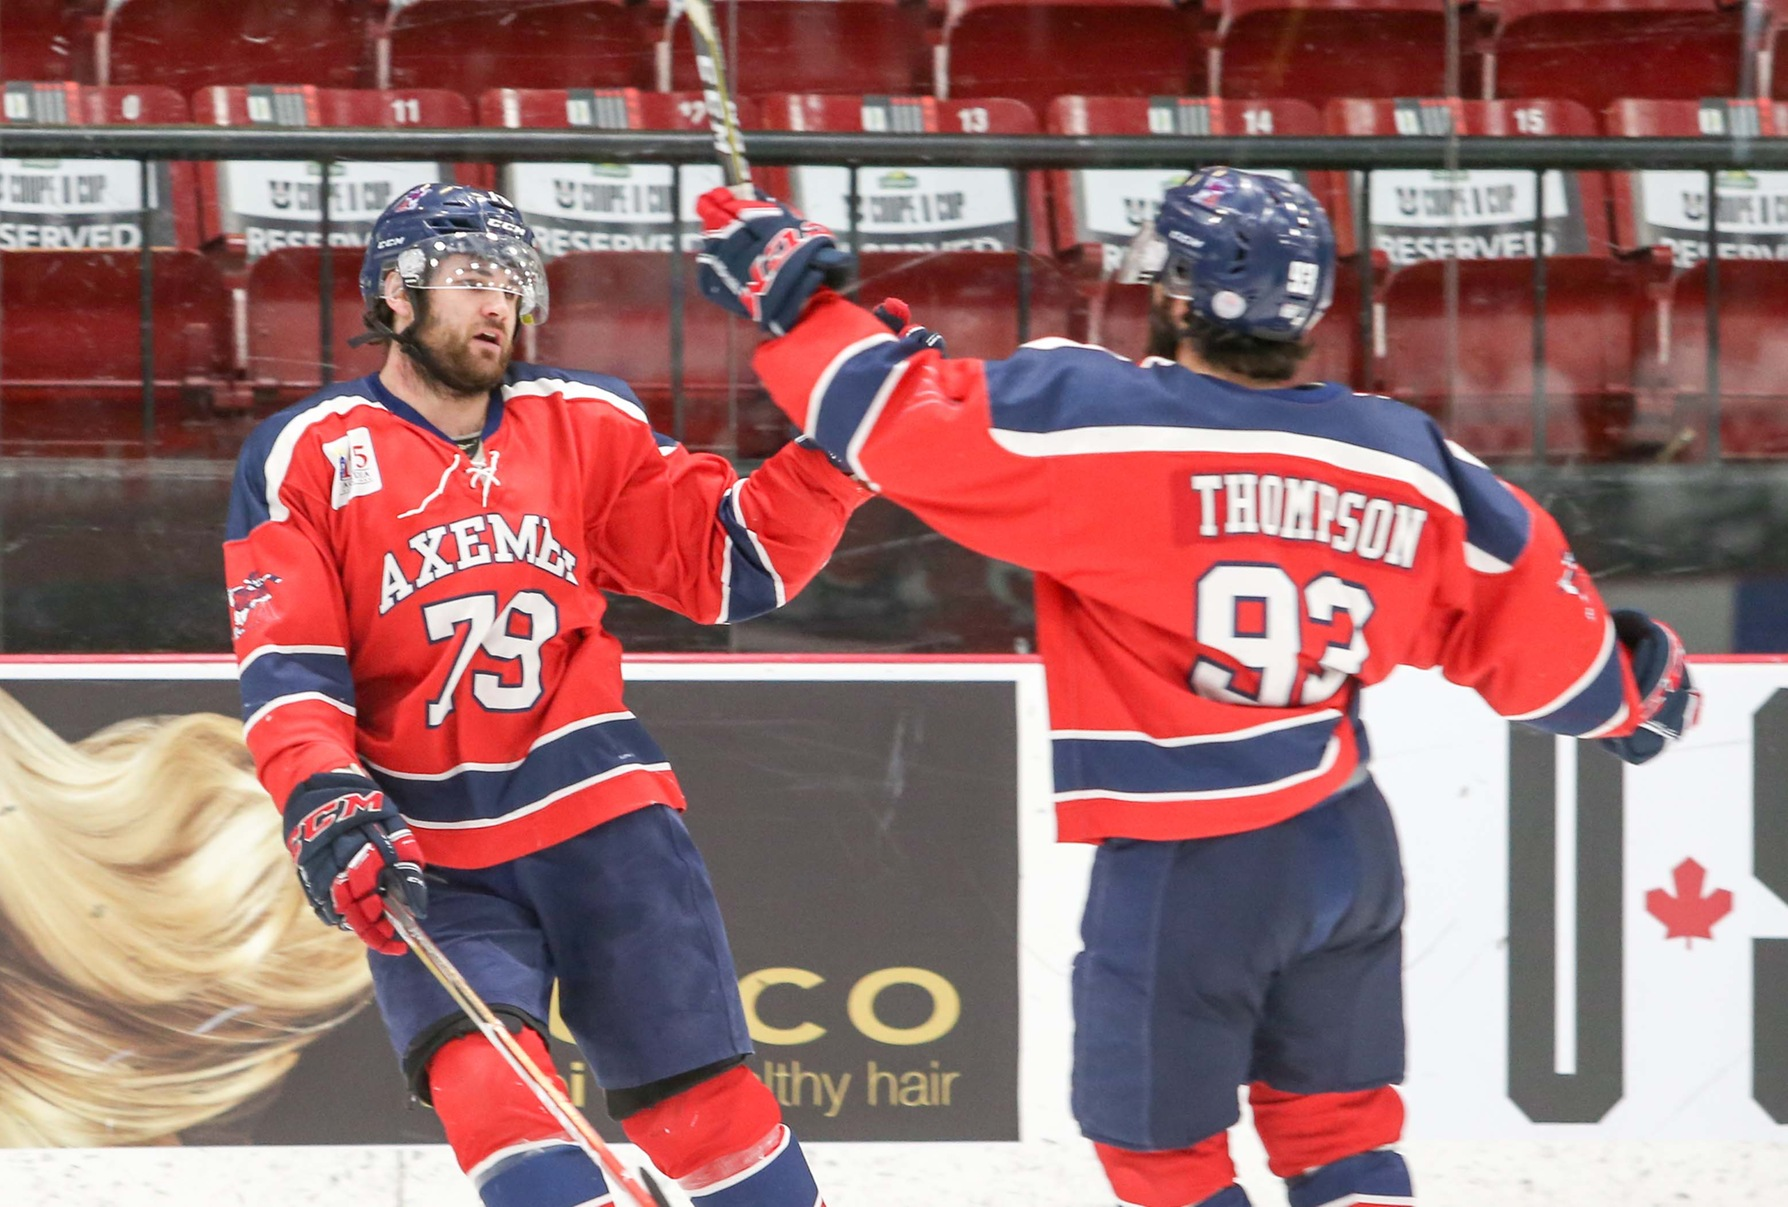 Bronze 2017 U SPORTS Cavendish University Cup: Acadia lays the lumber to win bronze, 7-3 over StFX